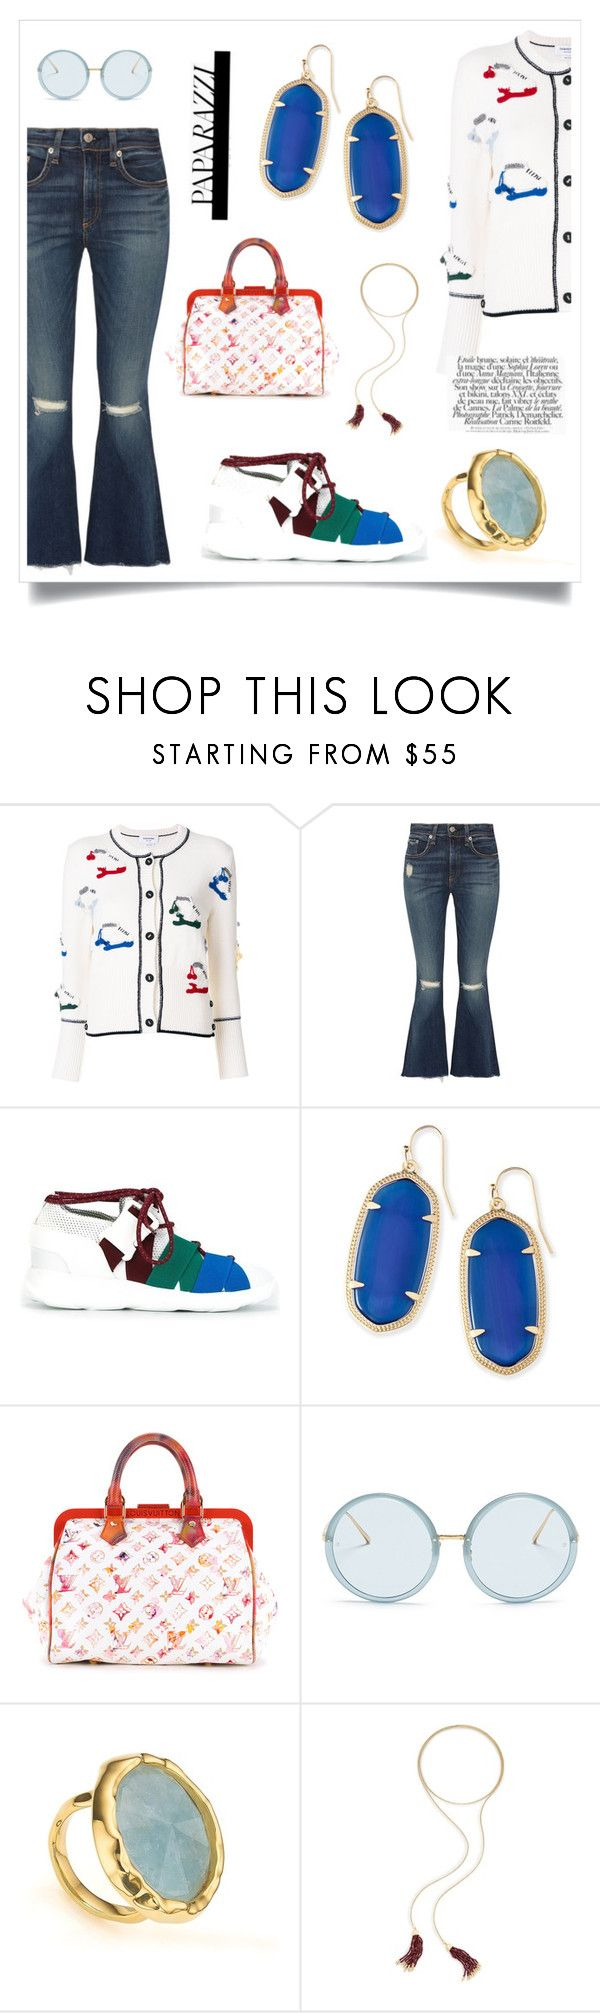 """""""Crewneck Cardigan With Crochet..**"""" by yagna ❤ liked on Polyvore featuring Thom Browne, rag & bone, Christopher Kane, Kendra Scott, Louis Vuitton, Linda Farrow and Monica Vinader"""